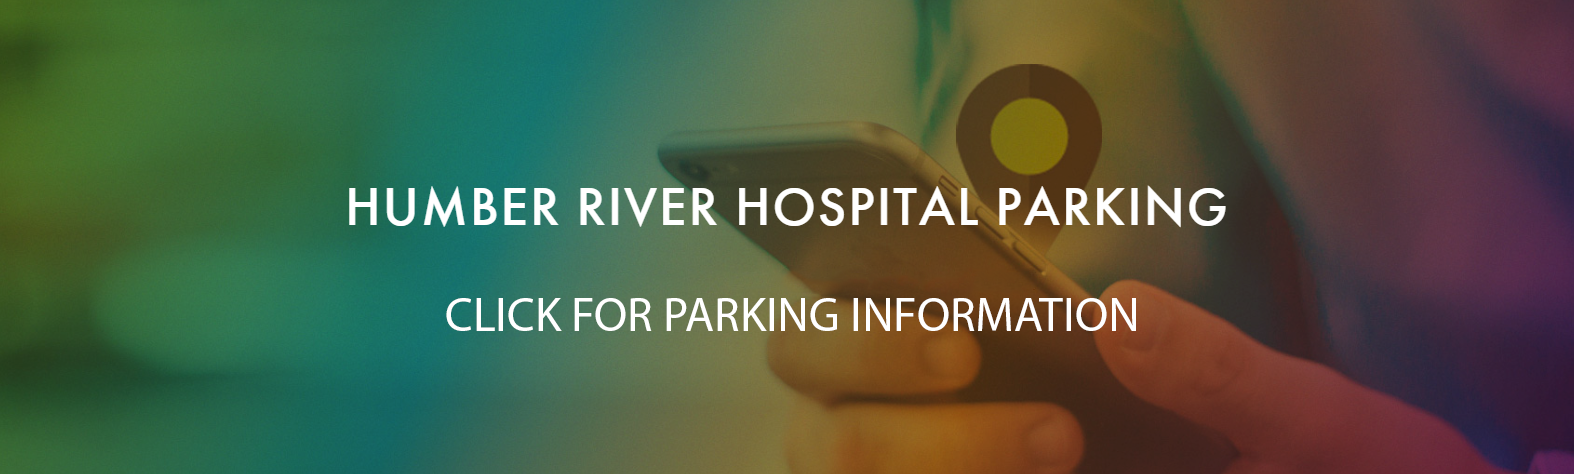 Getting to HRH - Humber River Hospital